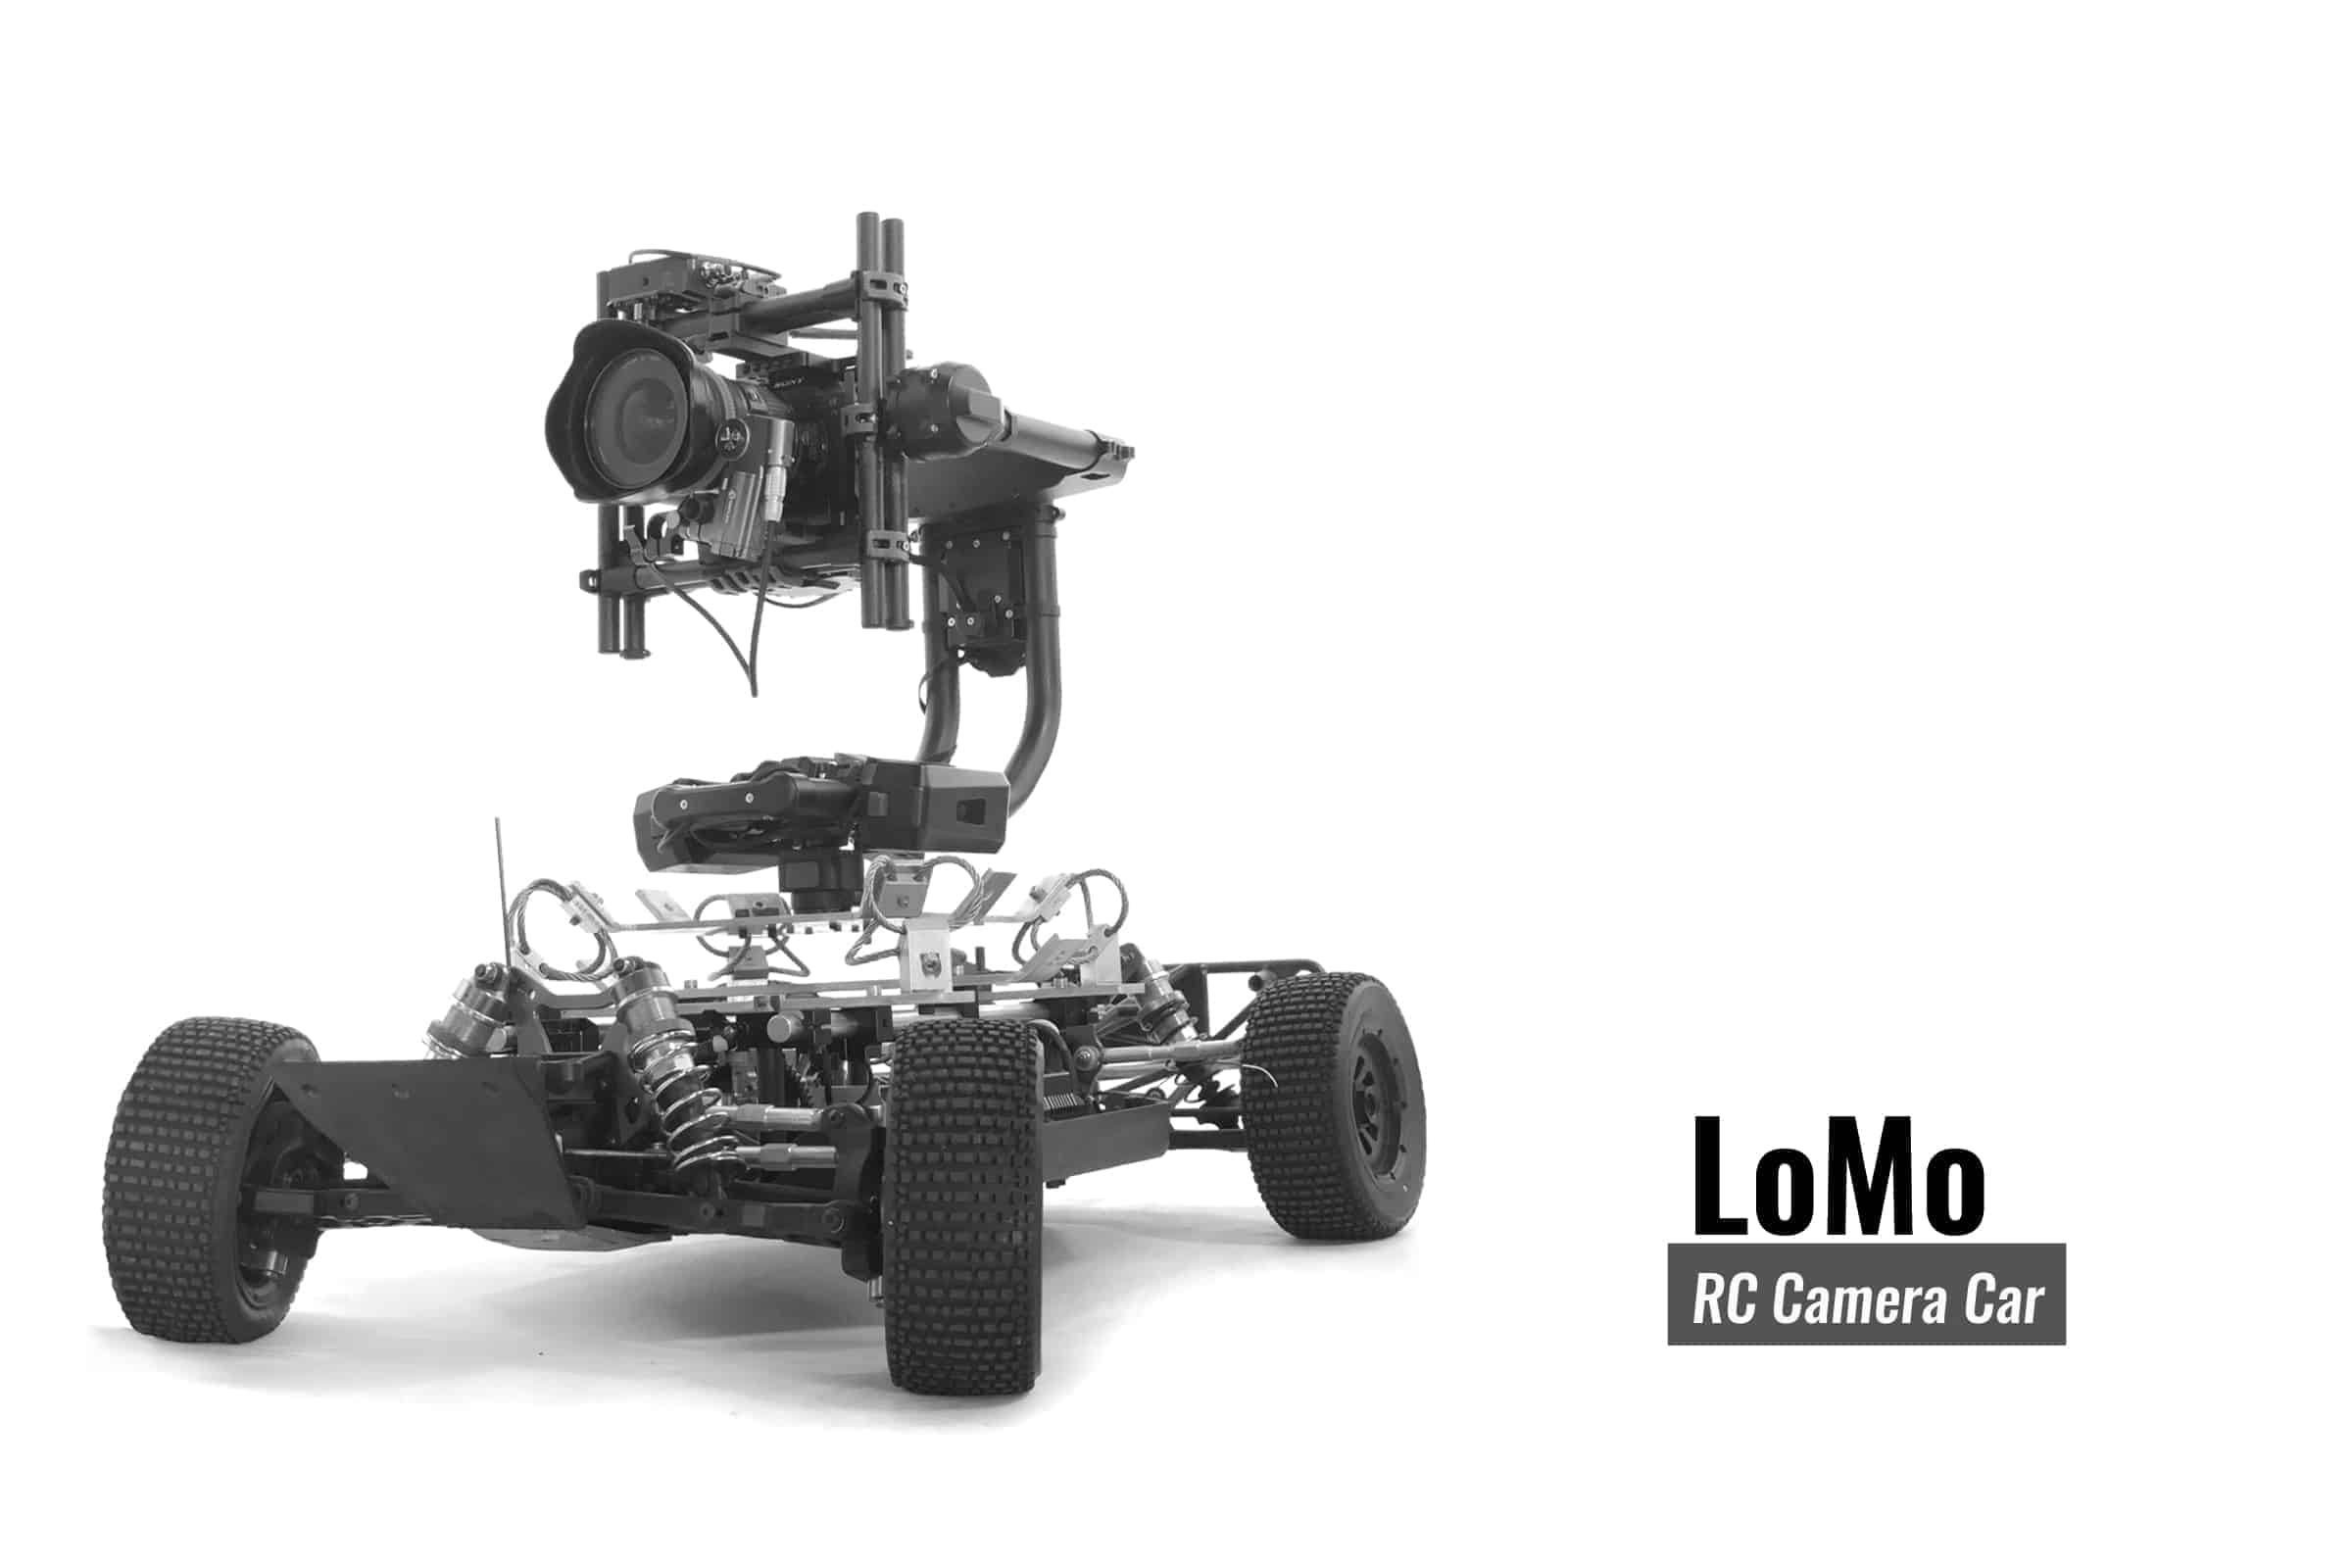 LoMo RC Camera Car by Motion House